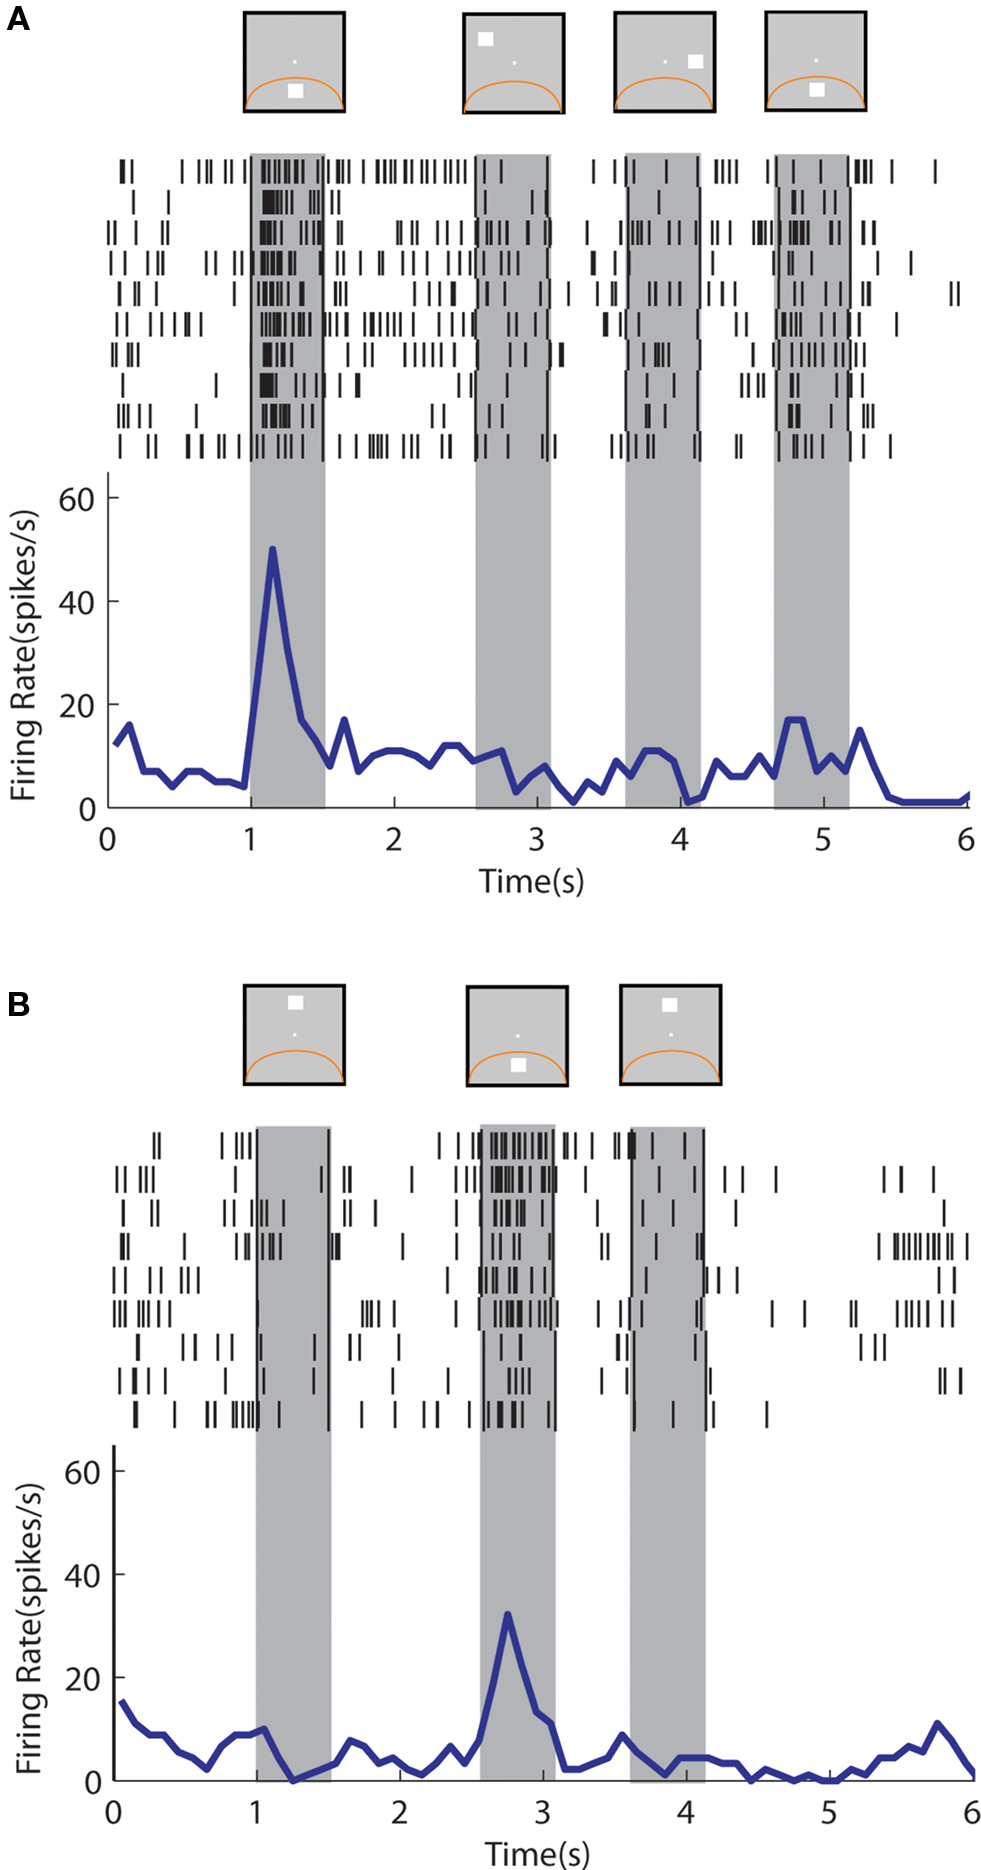 Frontiers Comparison Of Neural Activity Related To Working Memory Time Delay Circuits